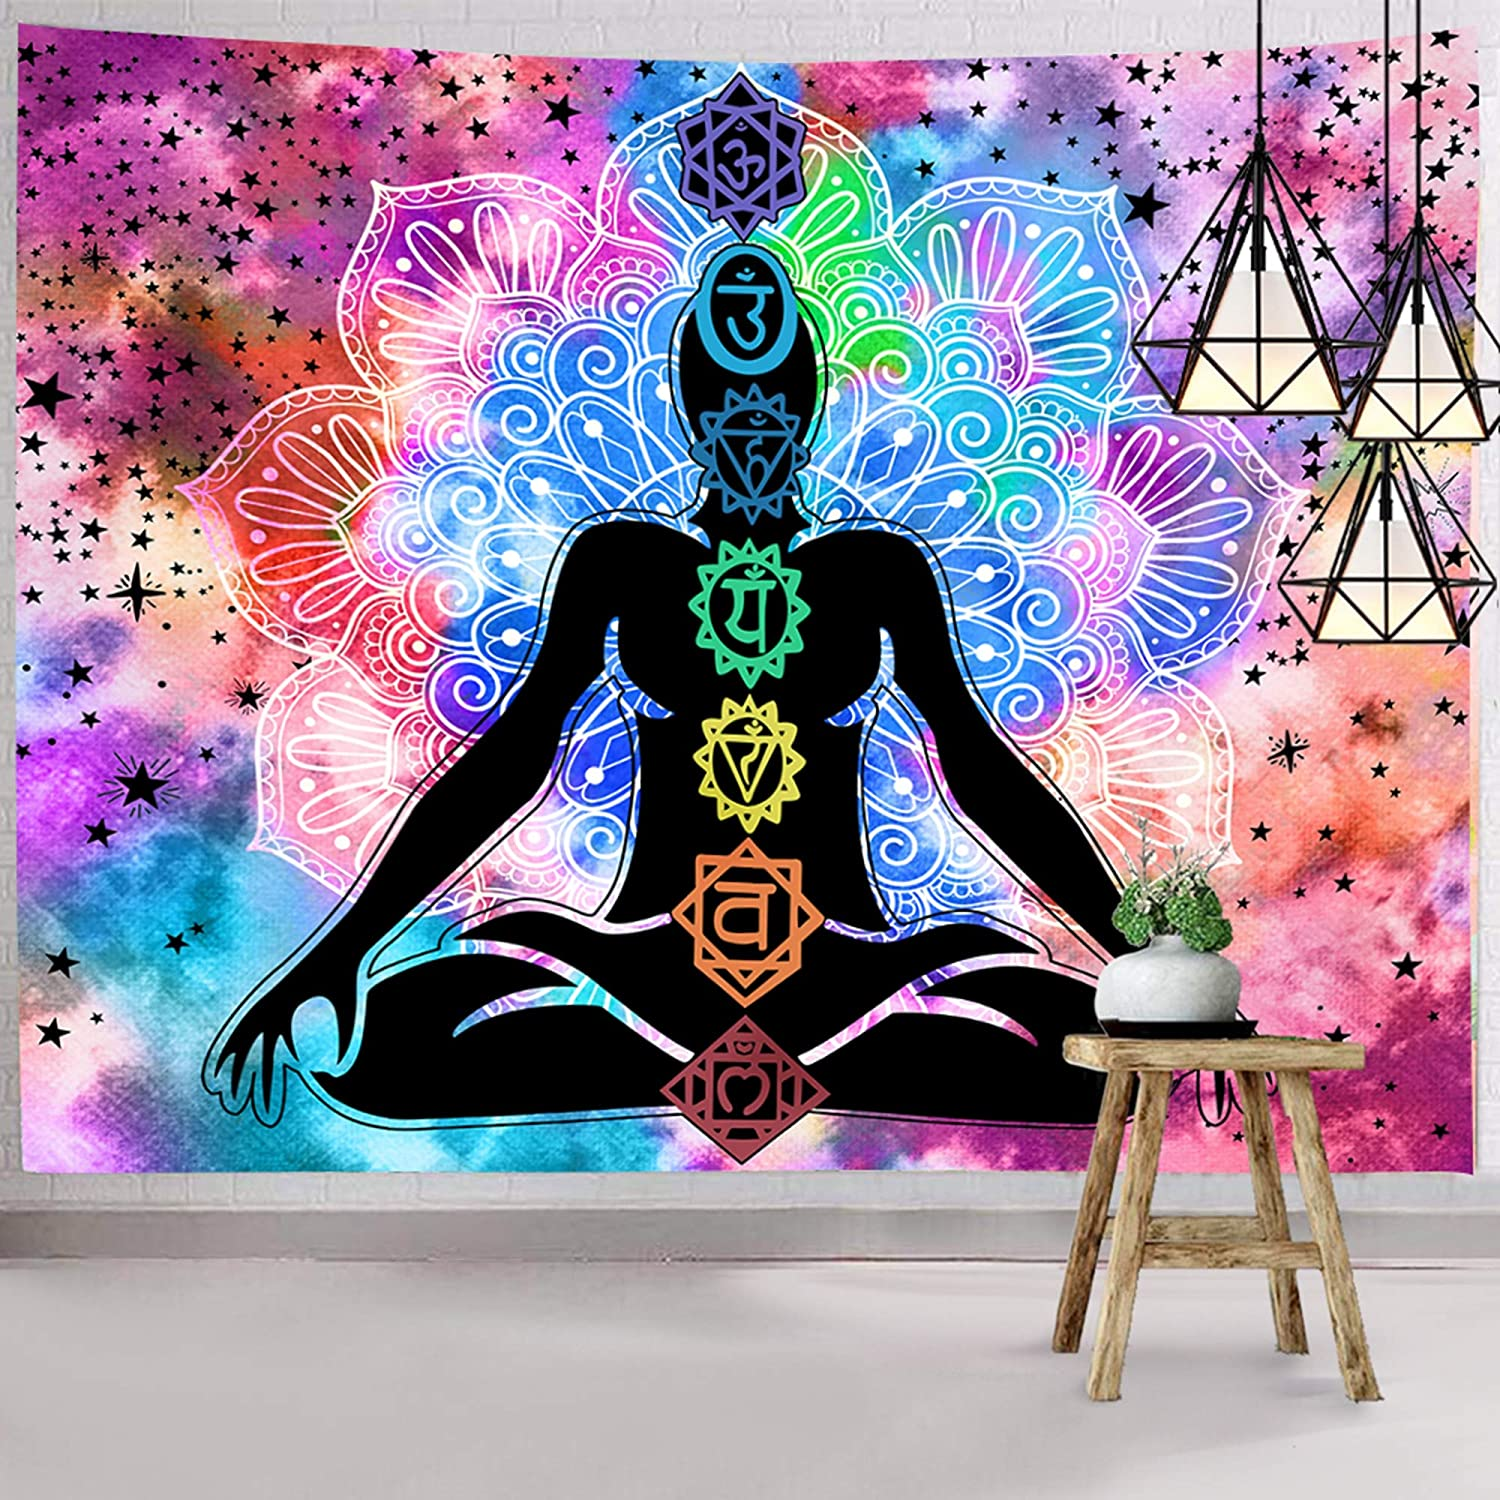 Hexagram Seven Chakra Tapestry Trippy Meditation Wall Tapestry Tie Dye Hippie Wall Art Yoga Wall Hanging for Dorm Room Decorations